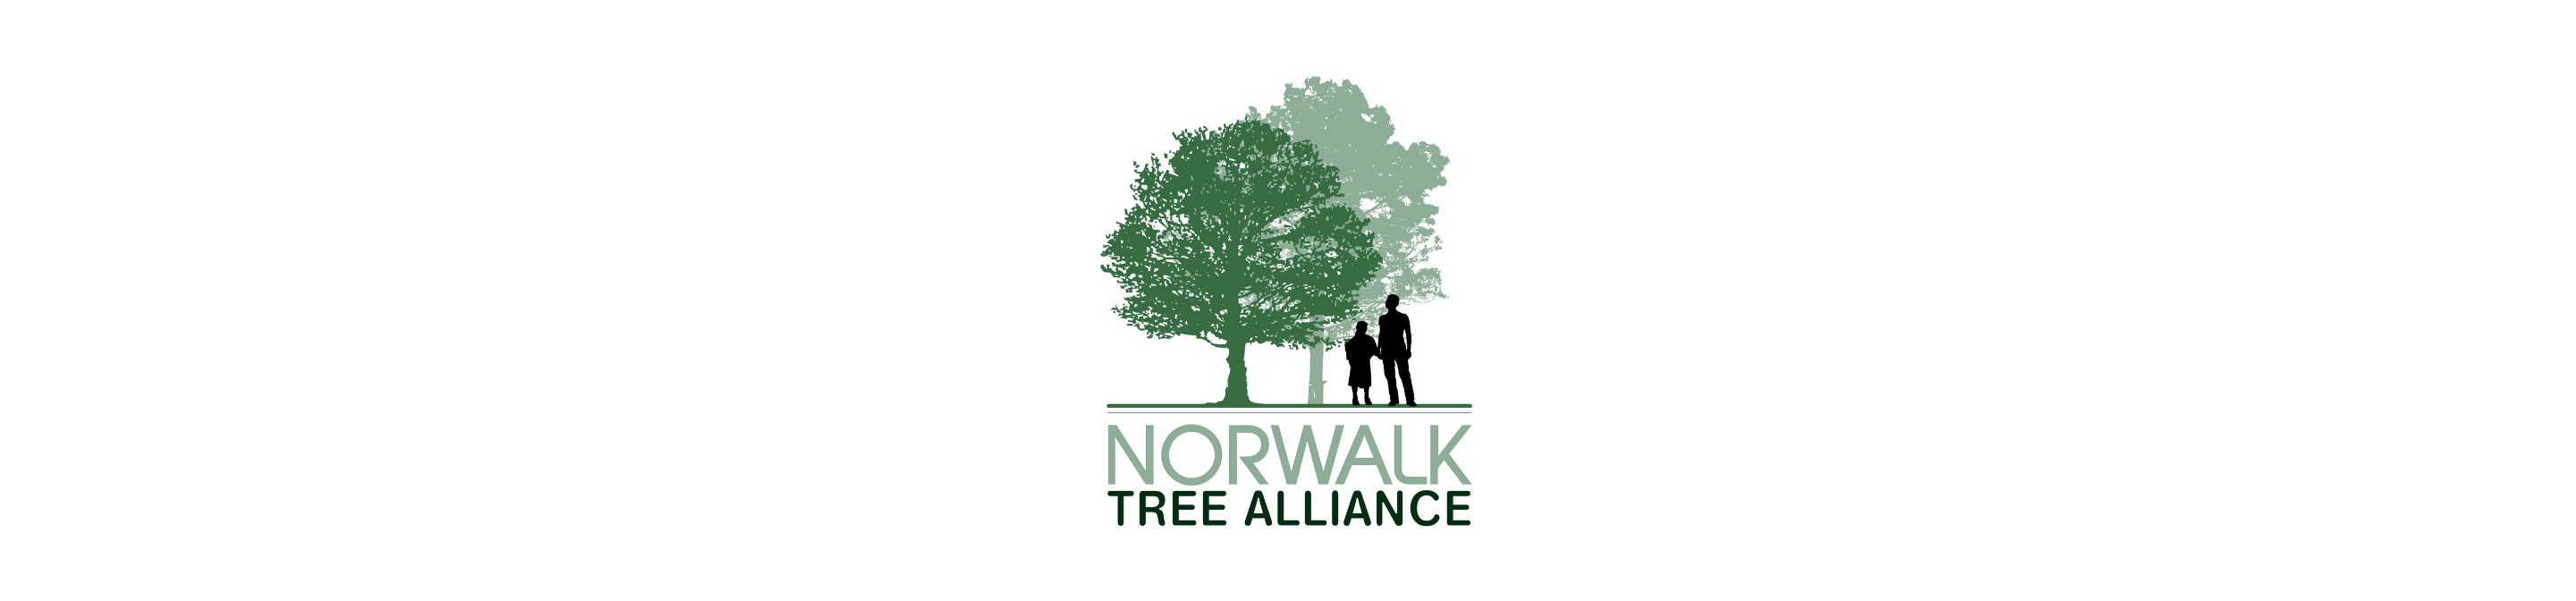 """Two people stand underneath two trees. Beneath the image are the words """"Norwalk Tree Alliance."""""""